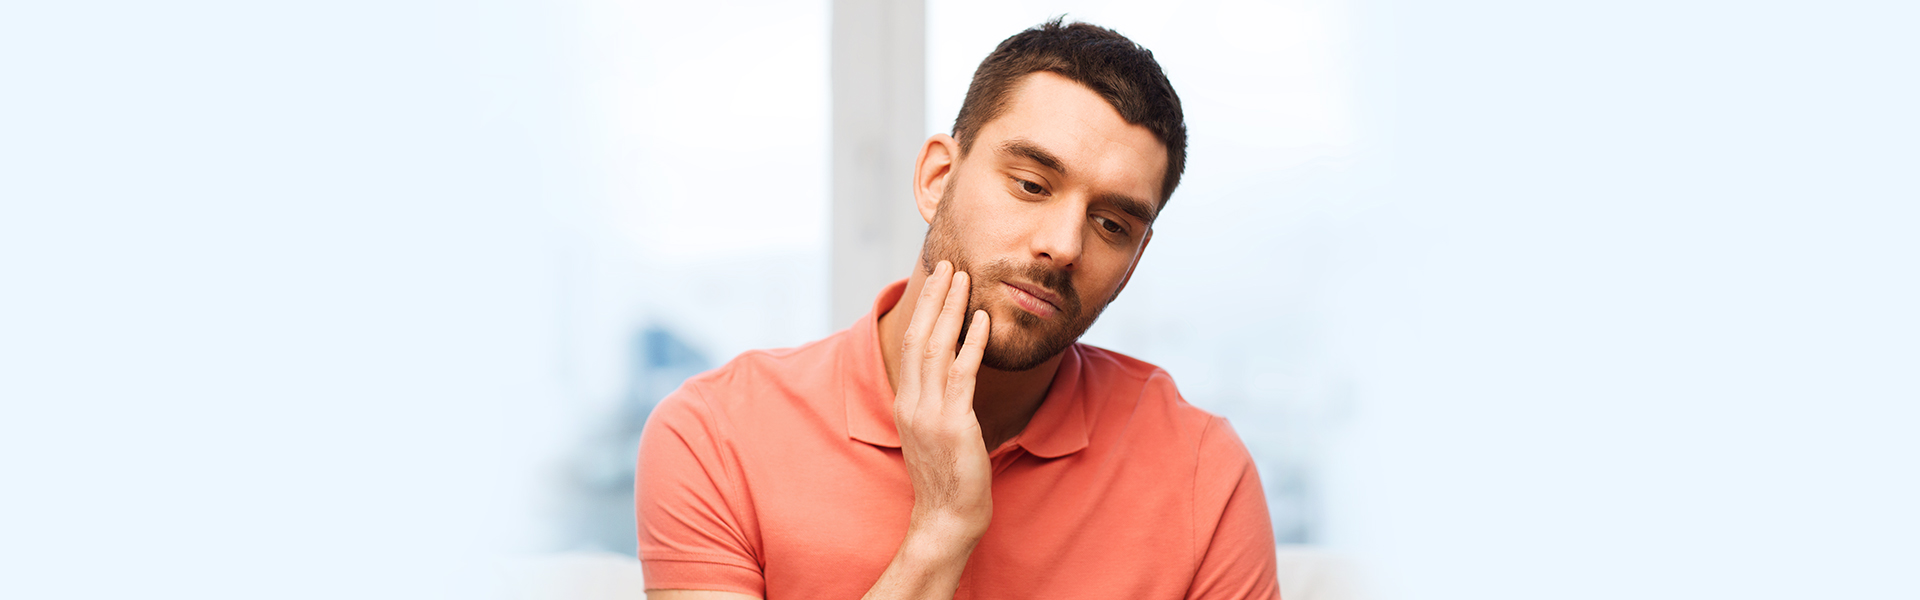 End Jaw Pain With TMJ Treatment in Cupertino, CA